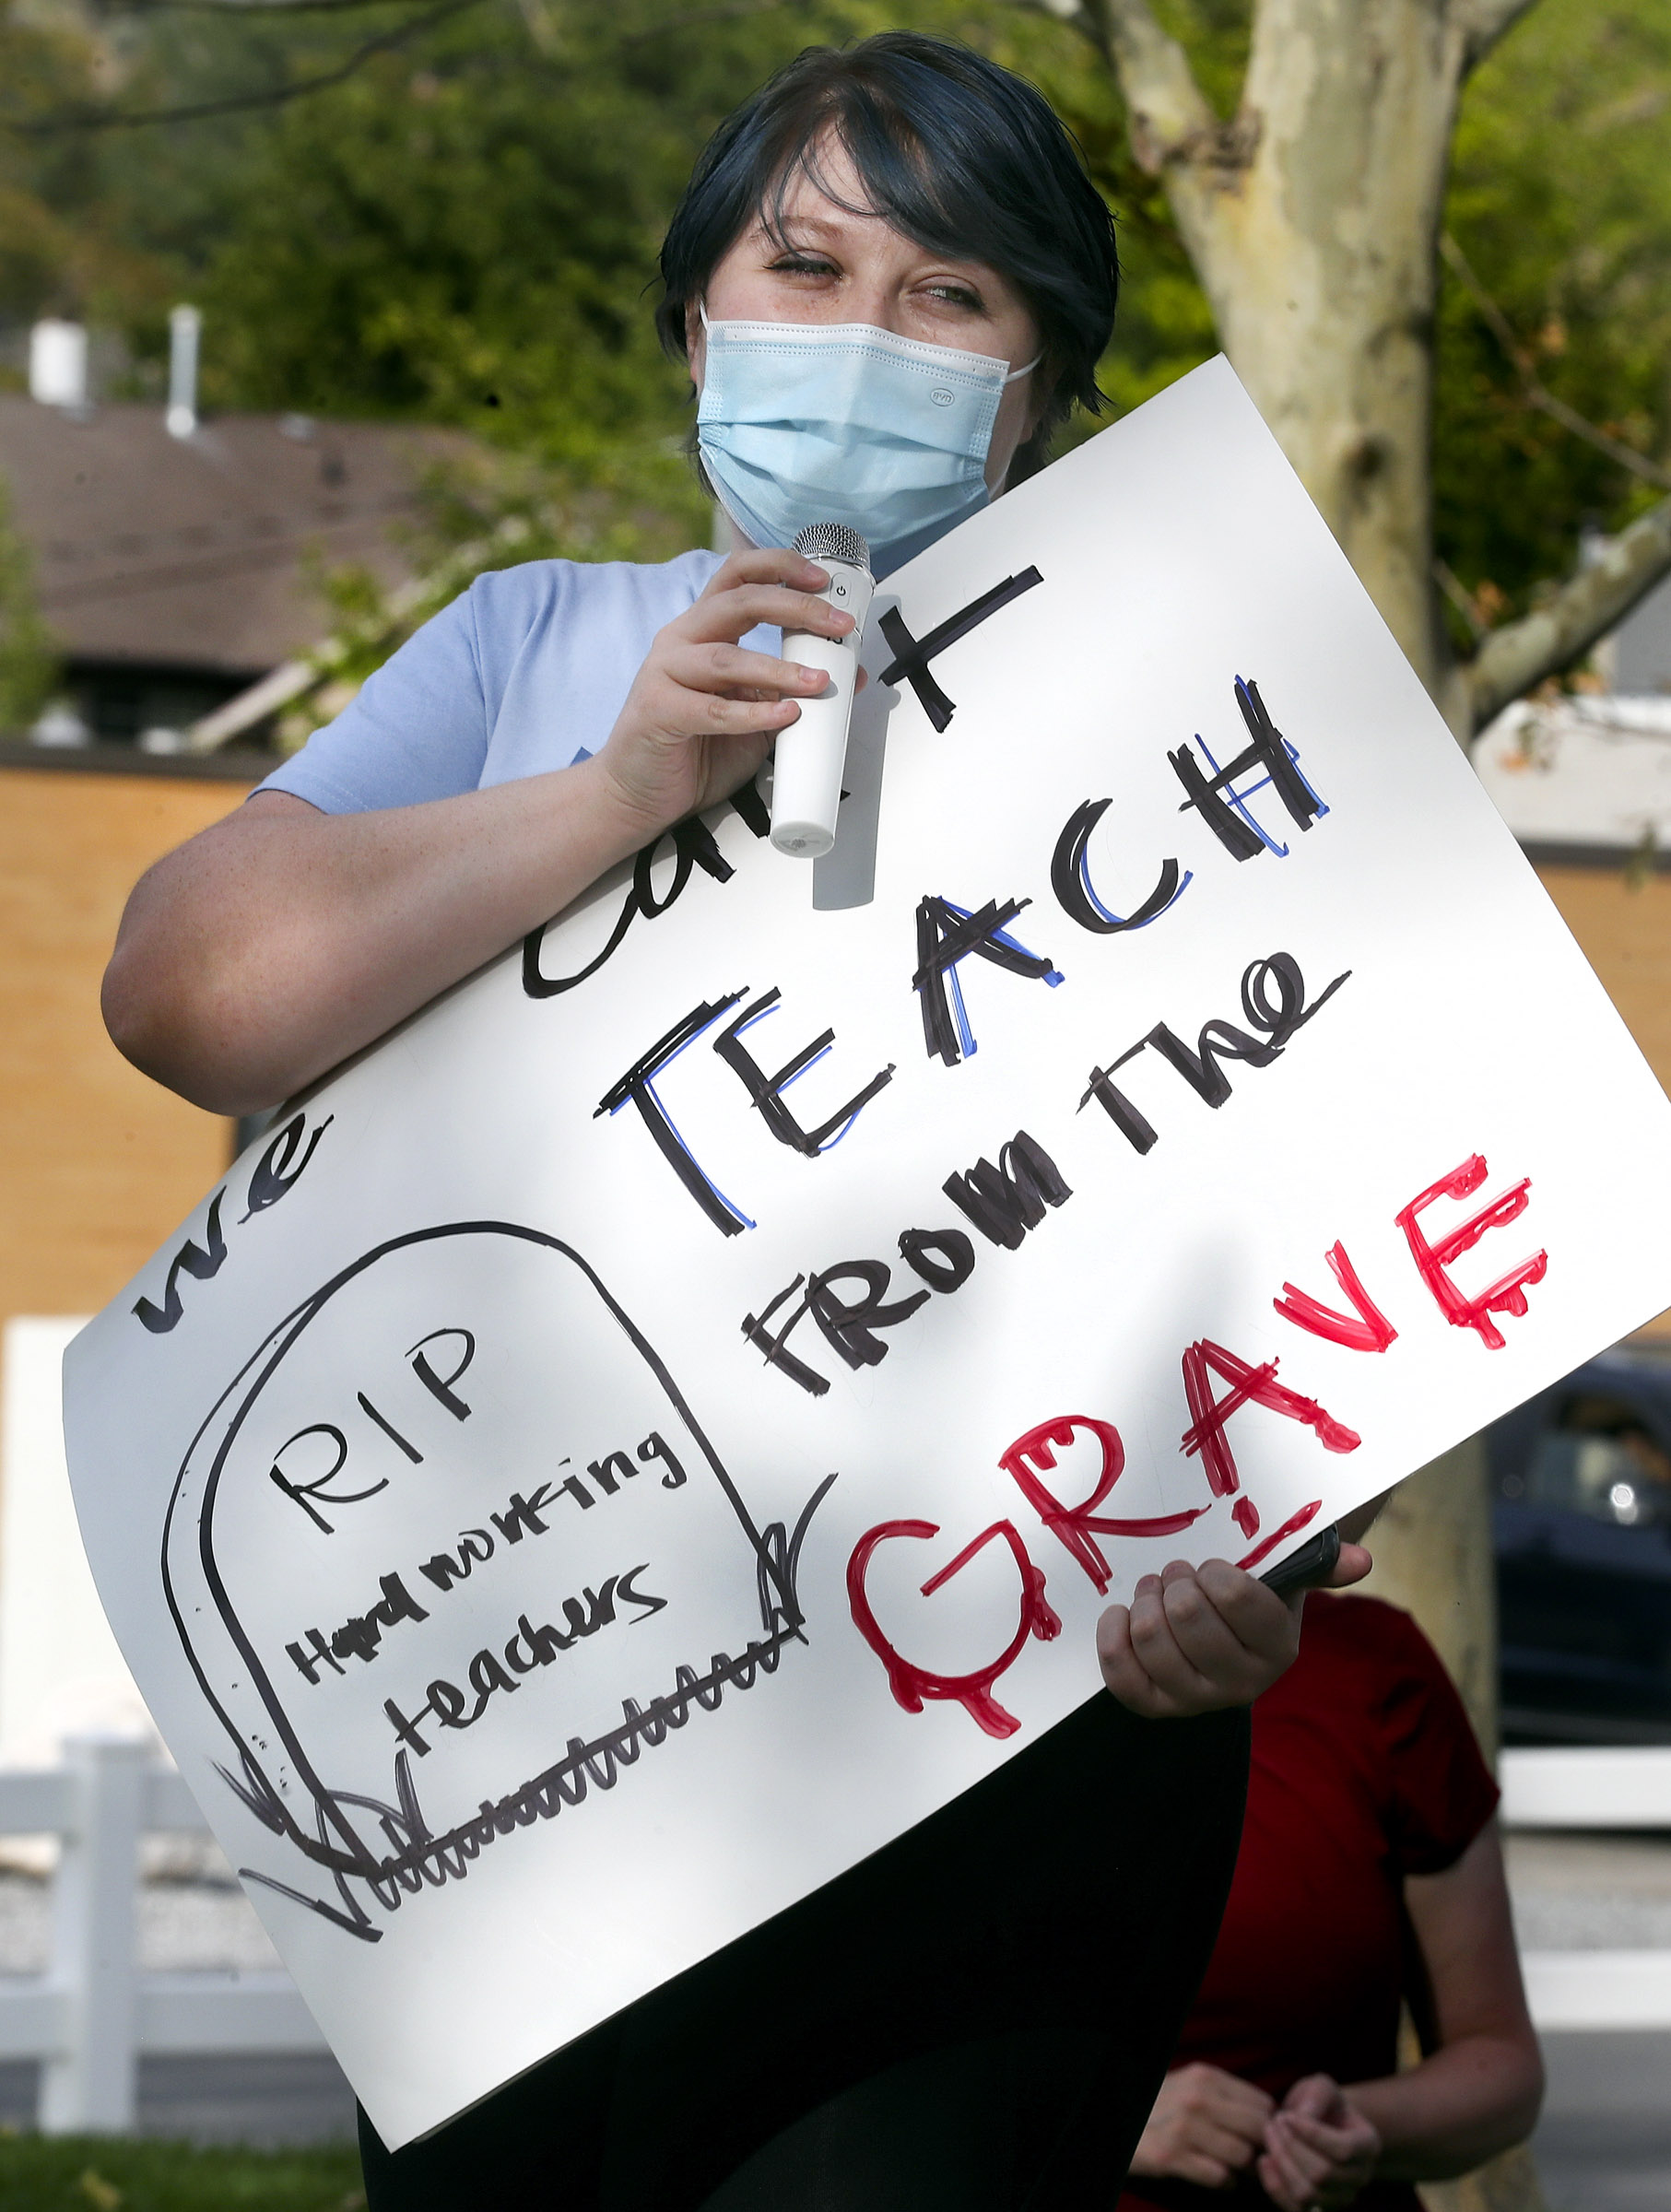 Brittany Goddard, a second grade teacher at Bountiful Elementary School, talks about teachers safety with students in the classroom during the COVID-19 pandemic during a rally in support of schoolteachers, staff and students outside of the Davis School District offices in Farmington on Friday, Sept. 25, 2020.